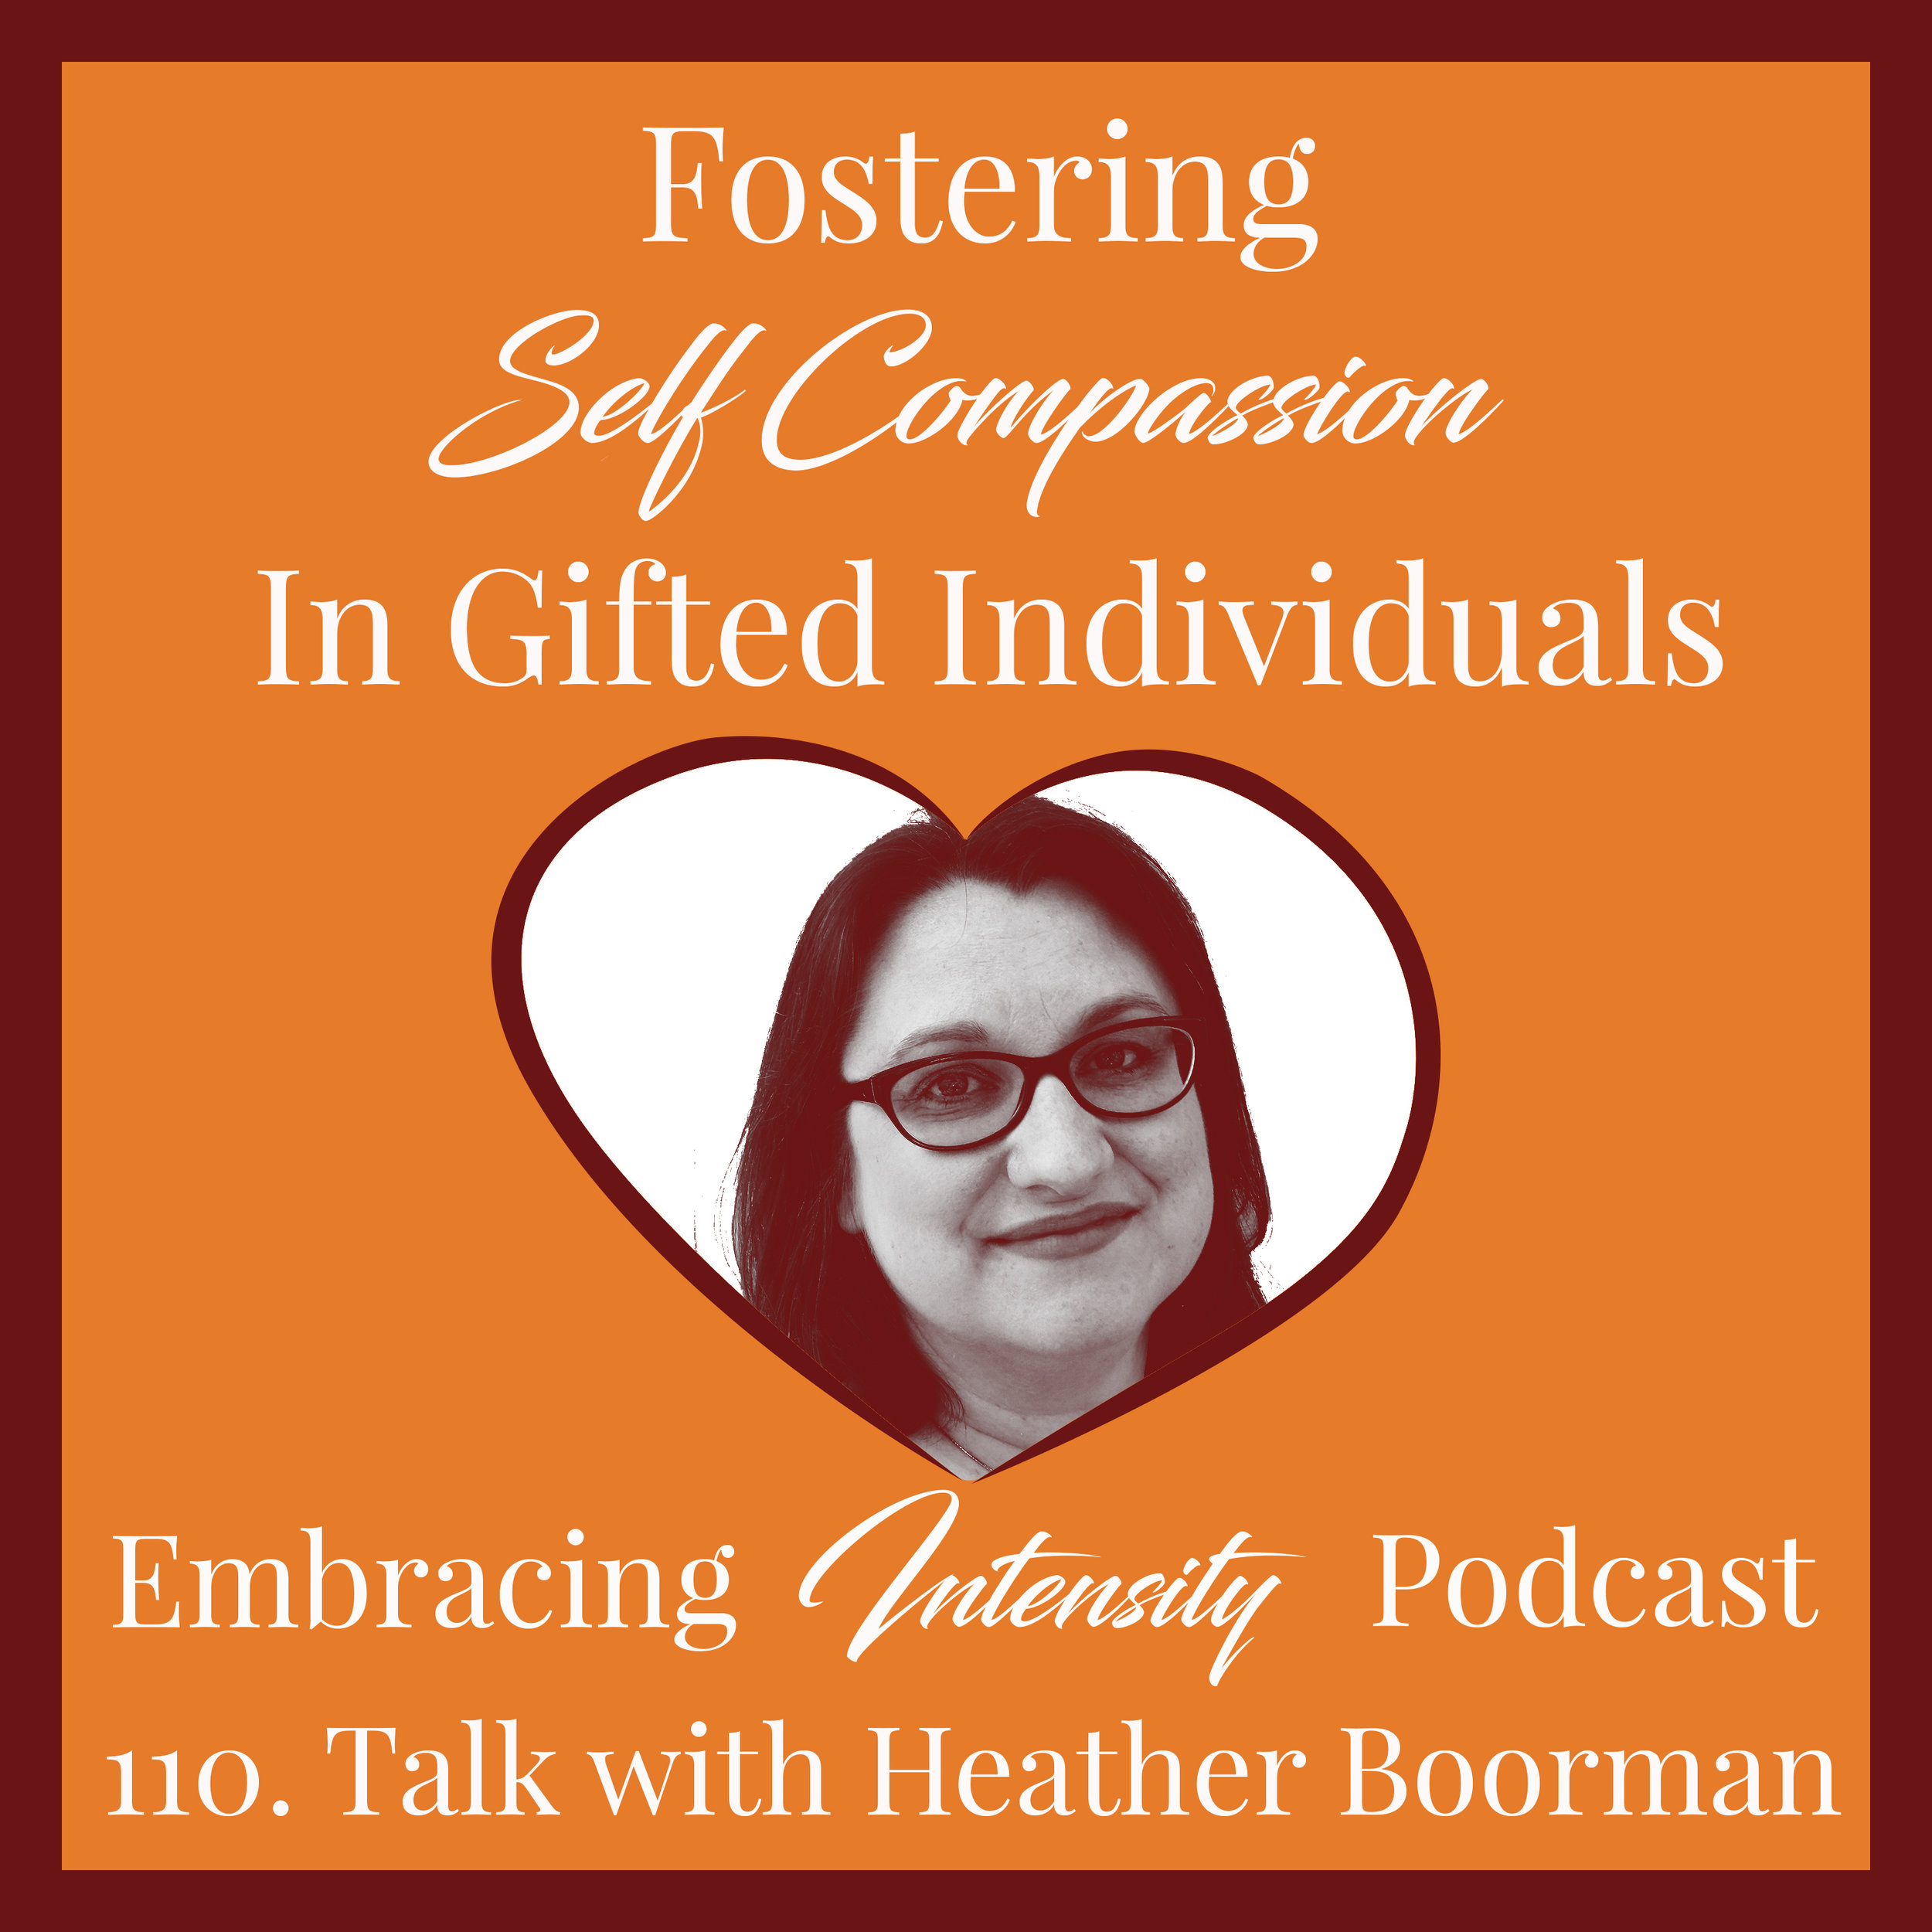 Fostering Self Compassion in Gifted Individuals